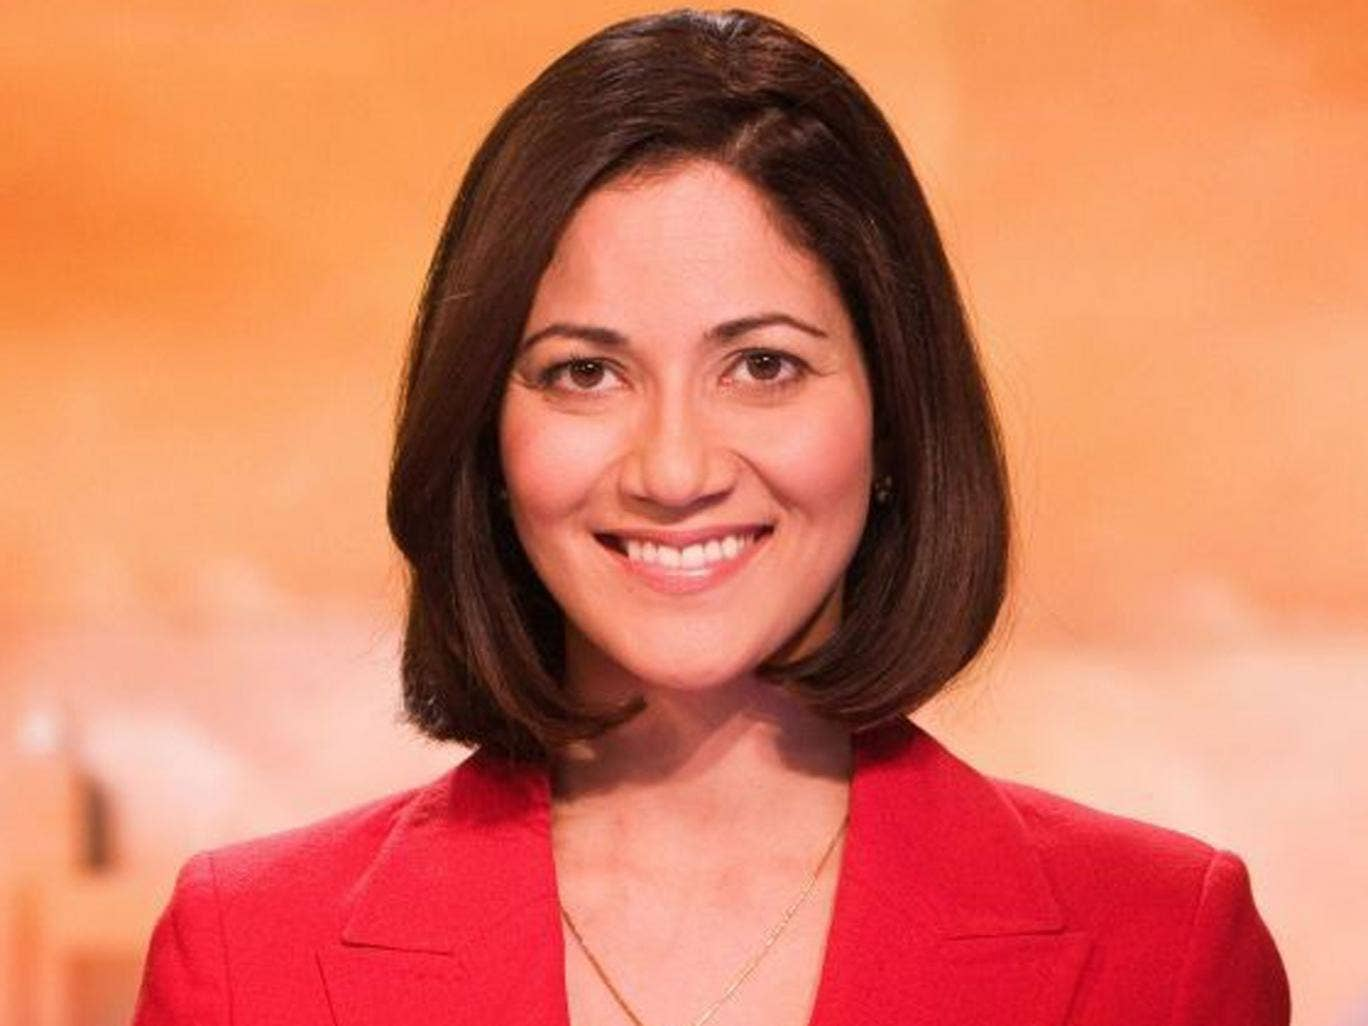 Mishal Husain will join presenters on BBC Radio 4's Today programme